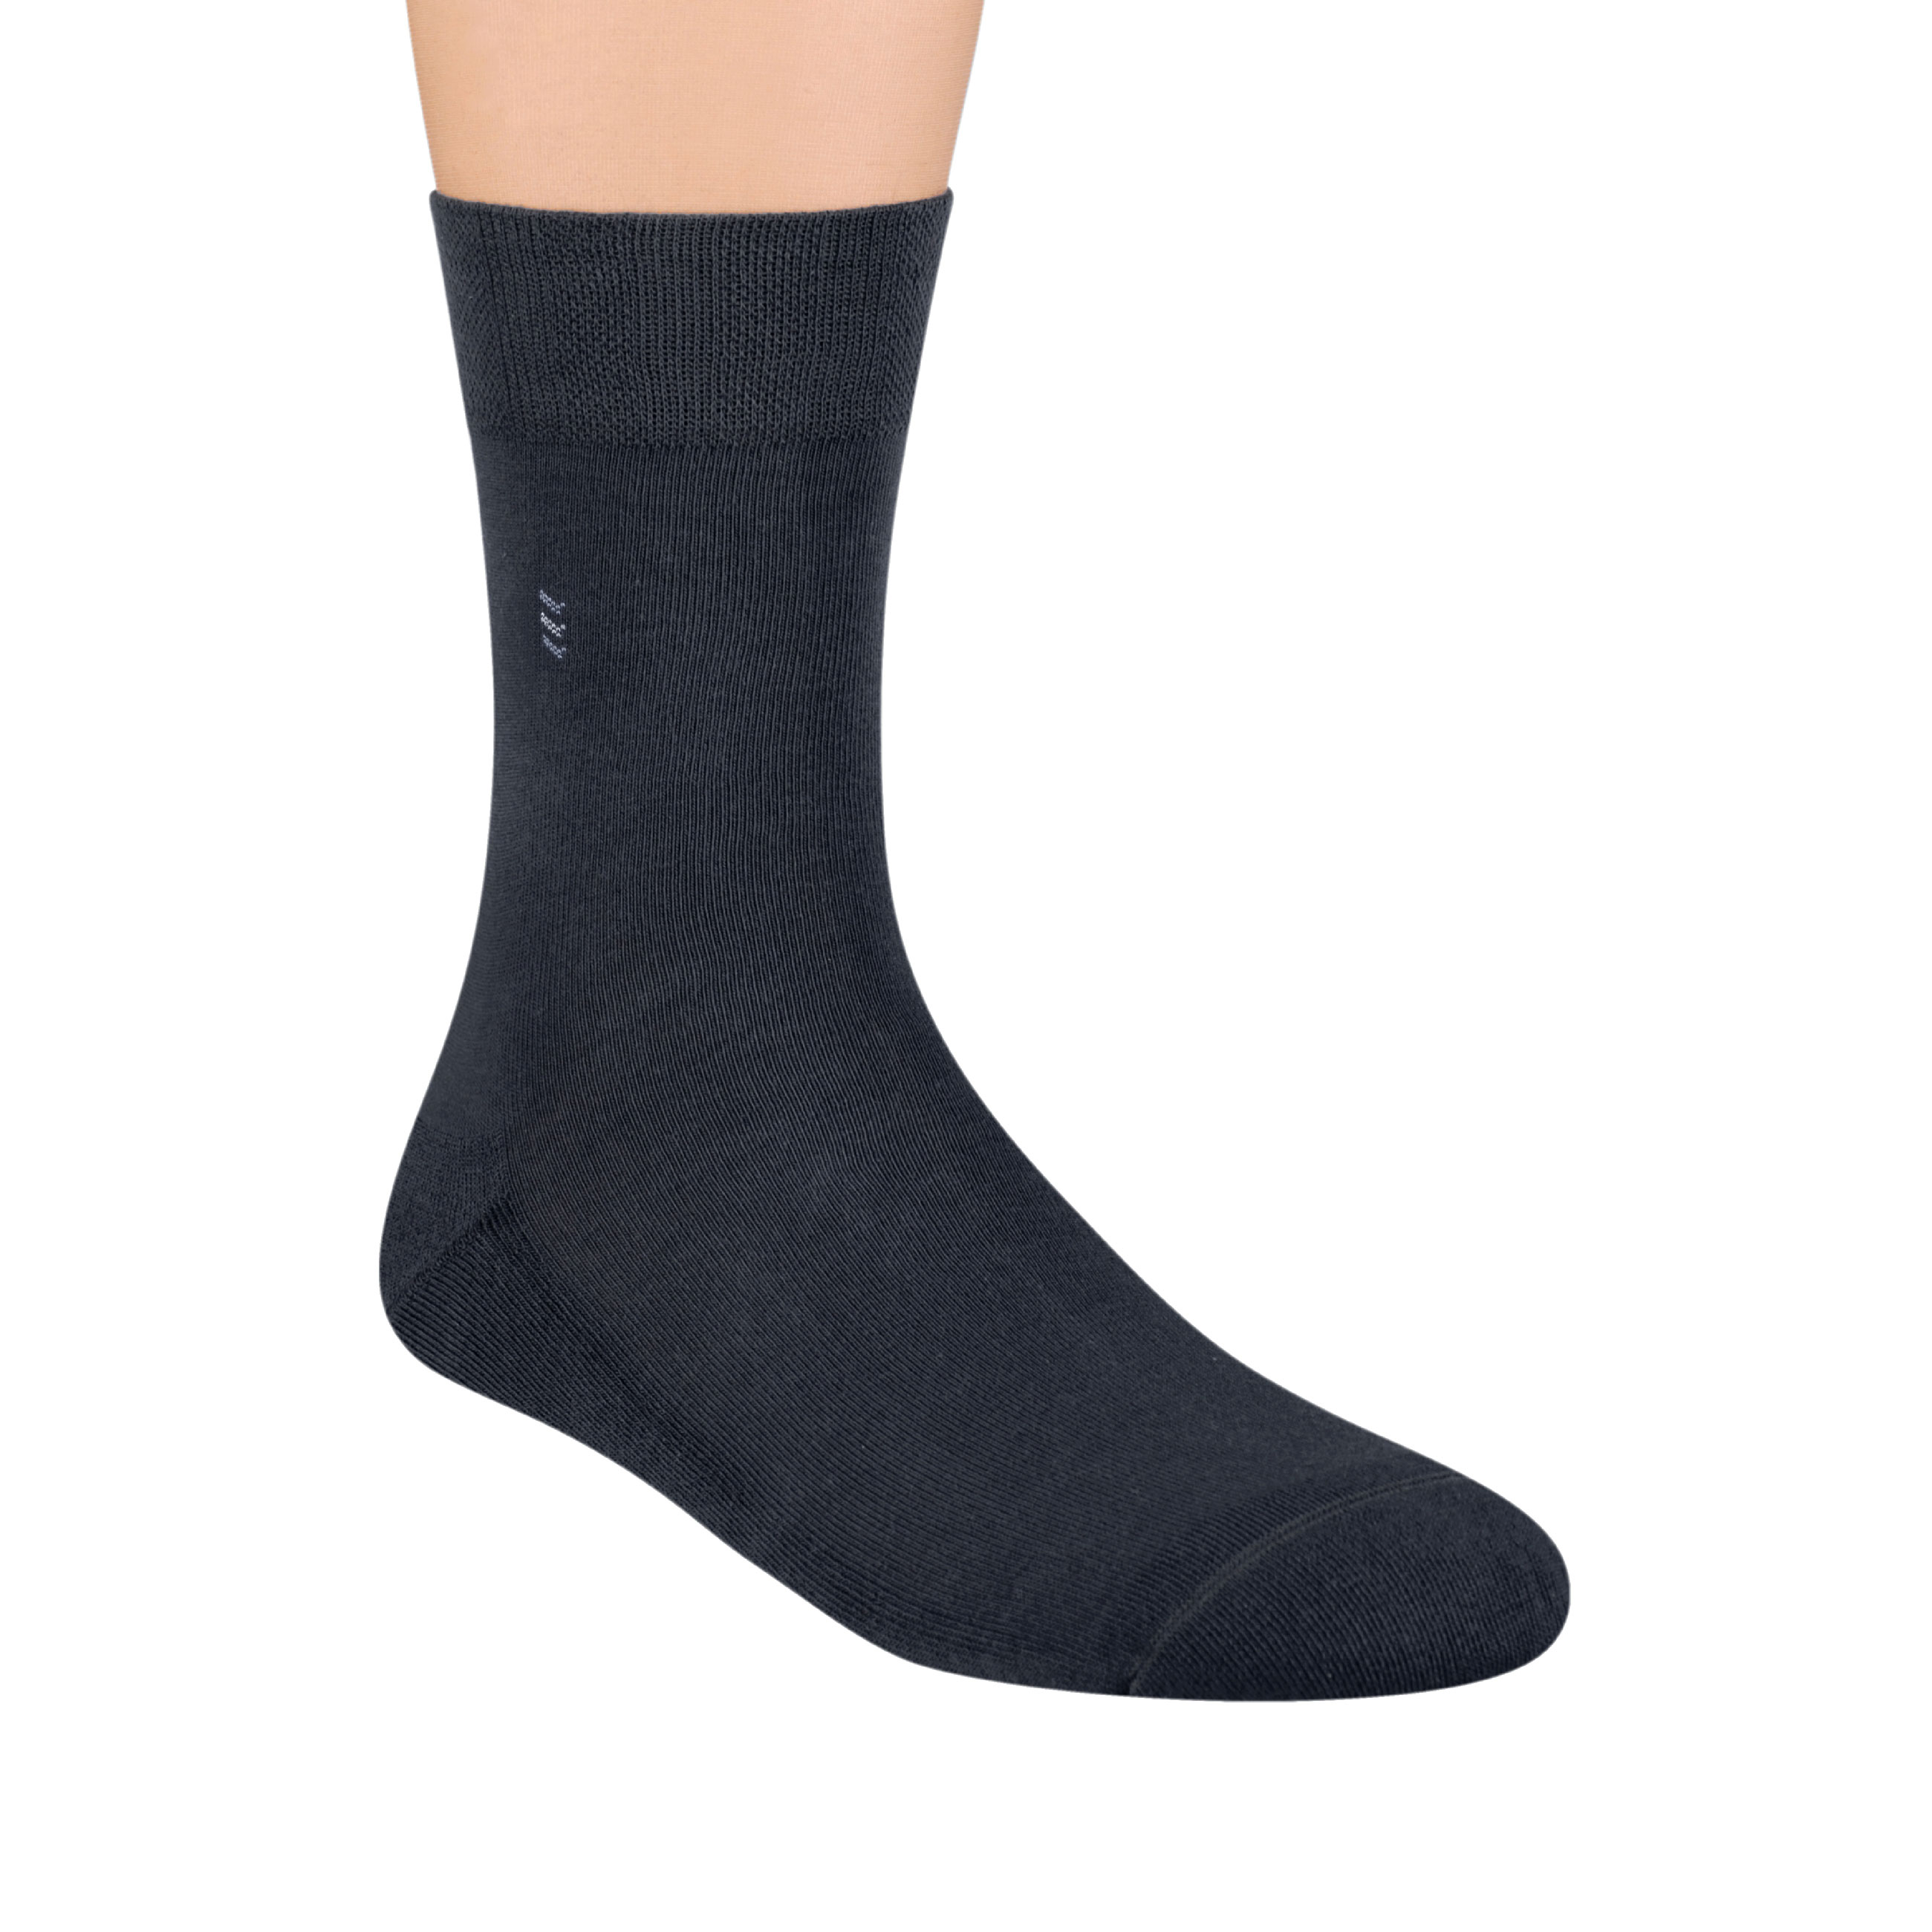 MEN'S SOCKS WITH SOLE FOR SHOES Frota, S003 GRAPHITE